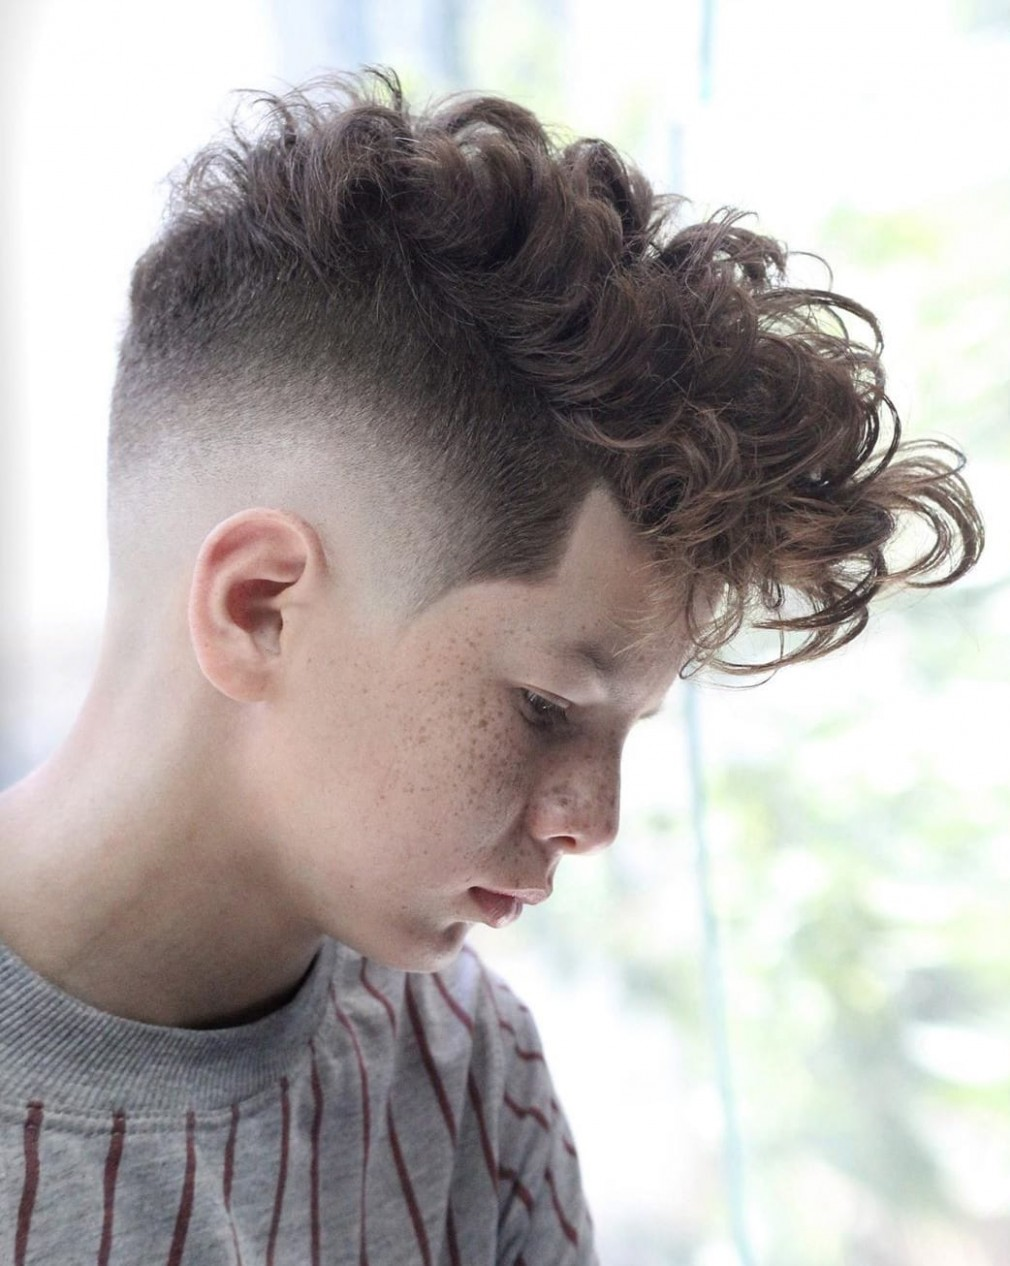 12 Best Hairstyles For Teenage Boys The Ultimate Guide 12 Hairstyles For Teenage Guys With Curly Hair